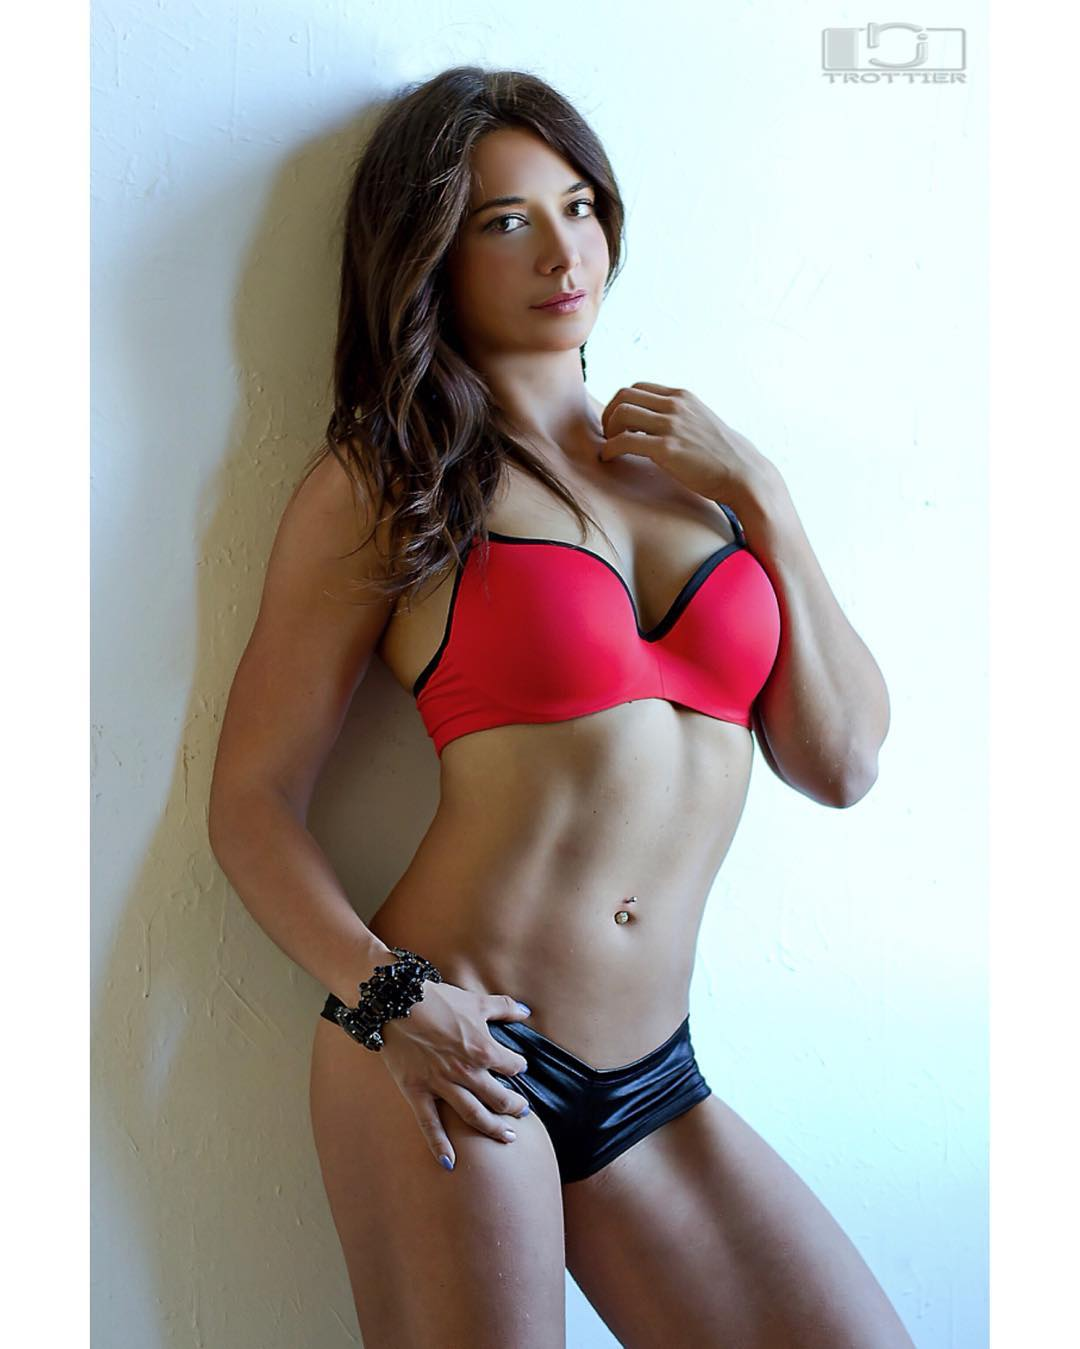 Do You Want Dating in the UAE Try Dubai Dating Club